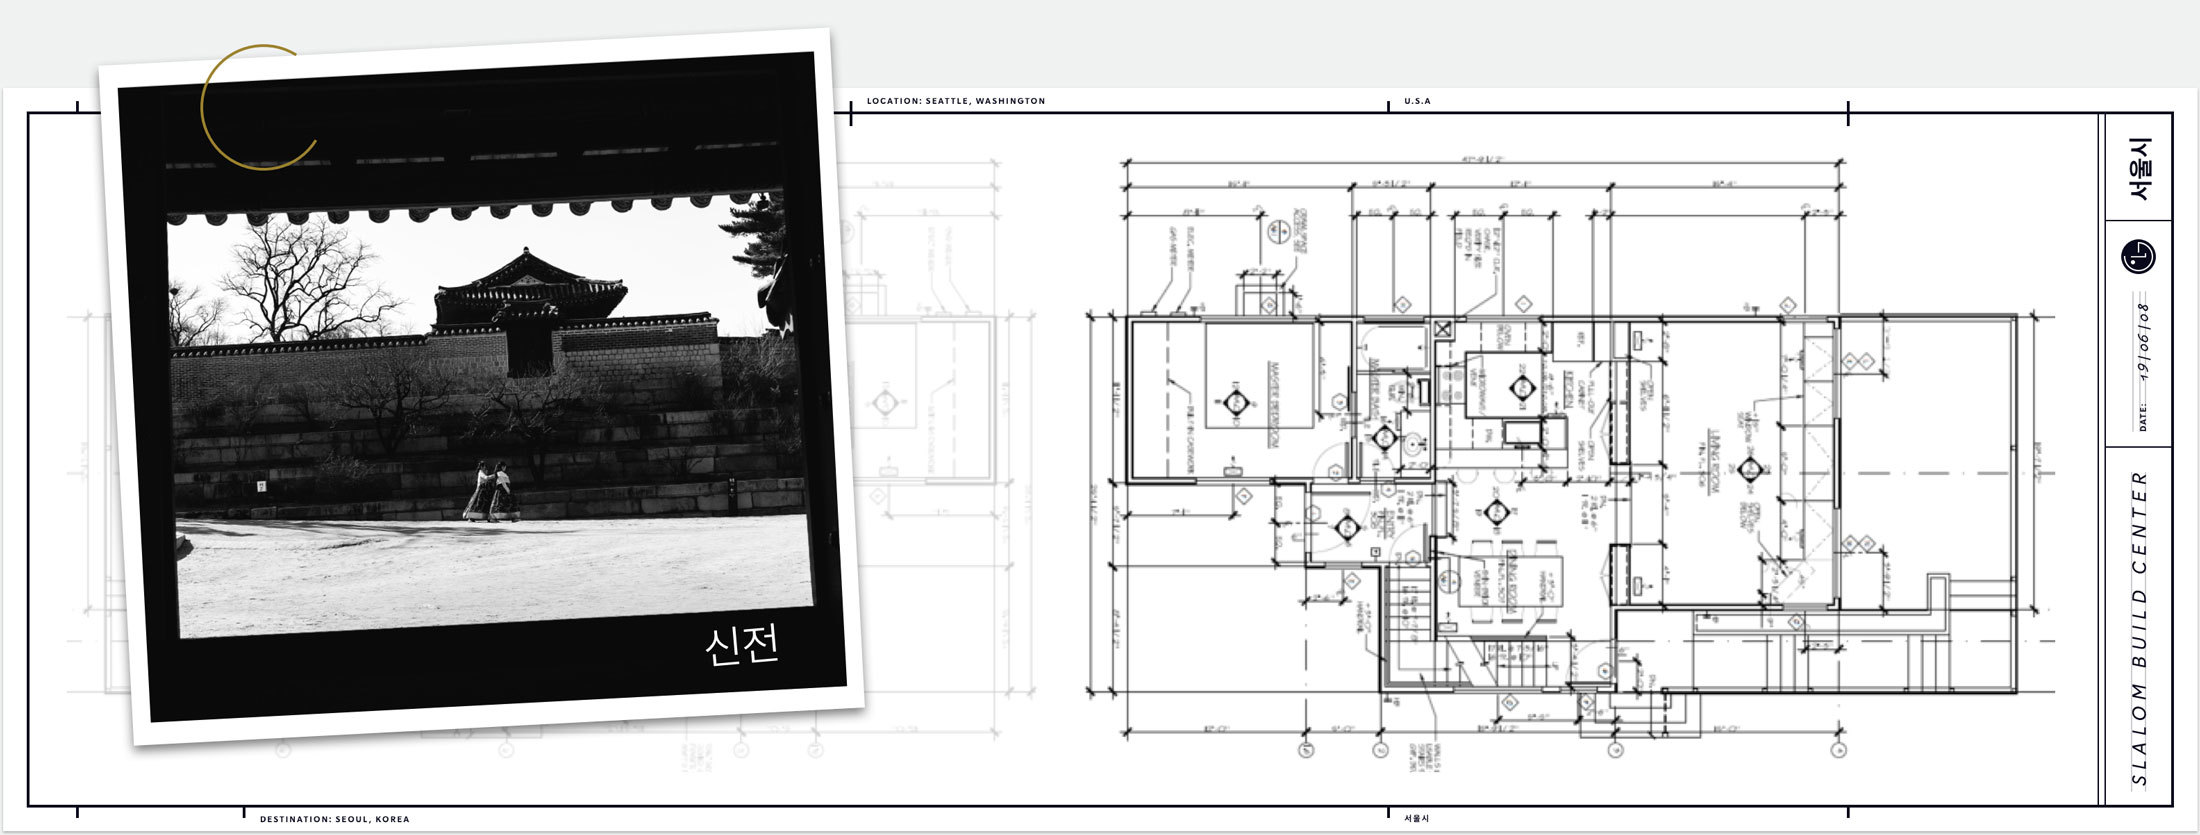 Graphic composition with photo of a pagoda and an office layout blueprint.